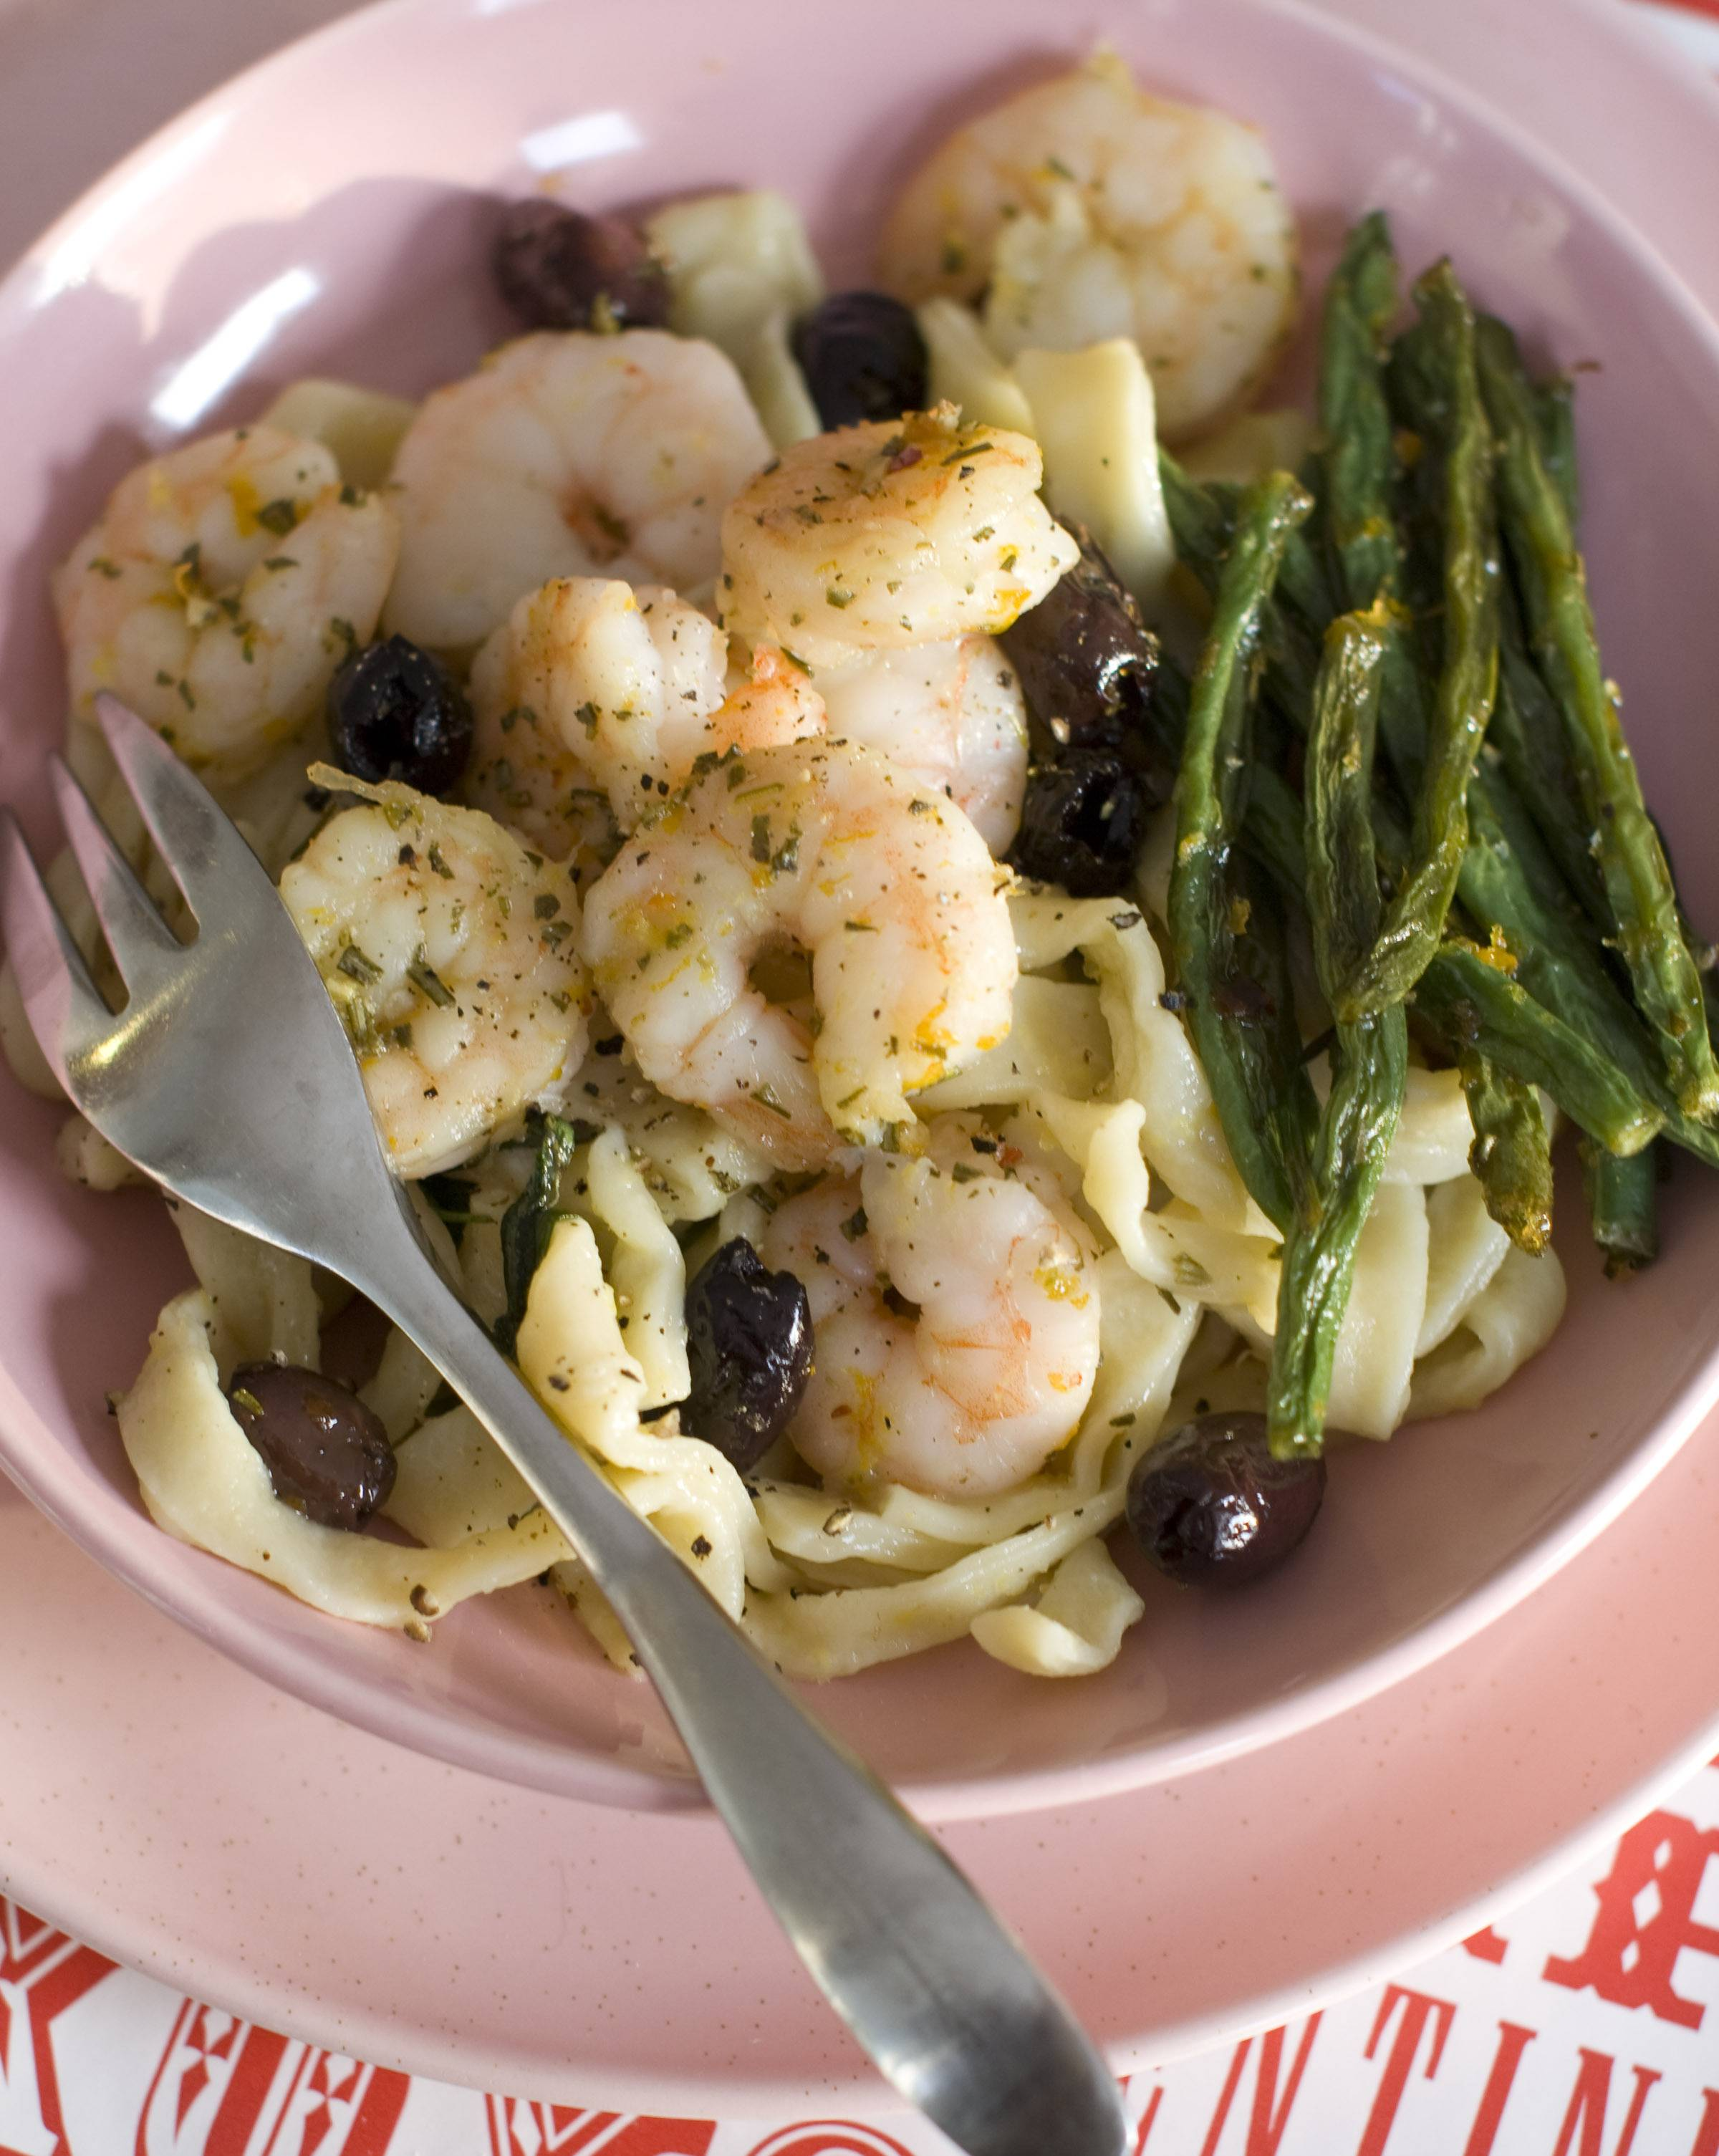 Show your valentine you're sweet on her with this honey-infused dinner of roasted shrimp with green beans and olives.